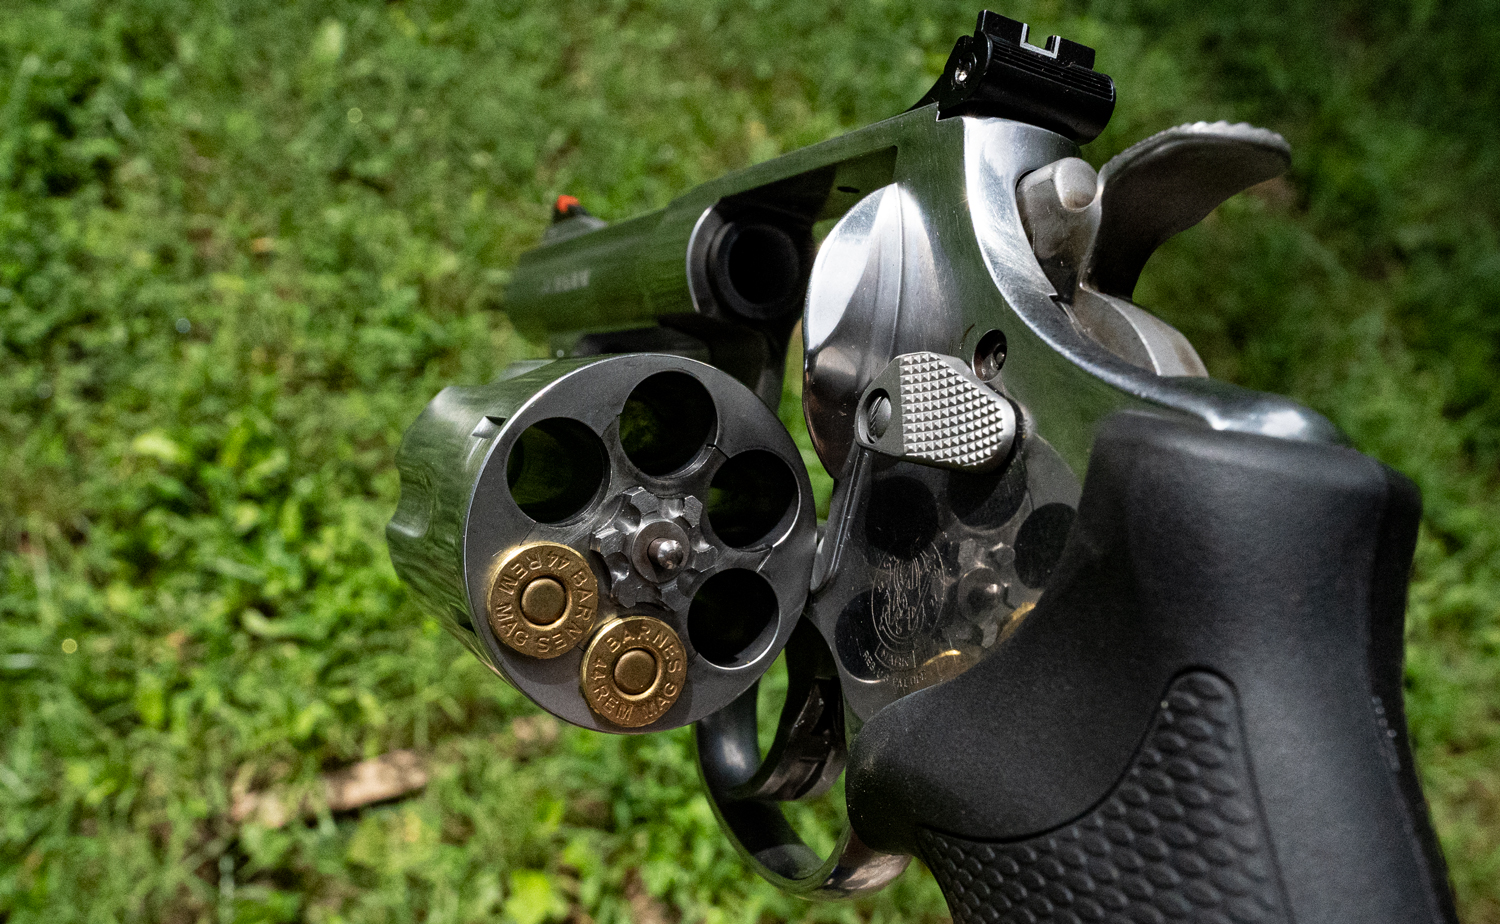 A 44 magnum Smith & Wesson revolver with ammo in the cylinder